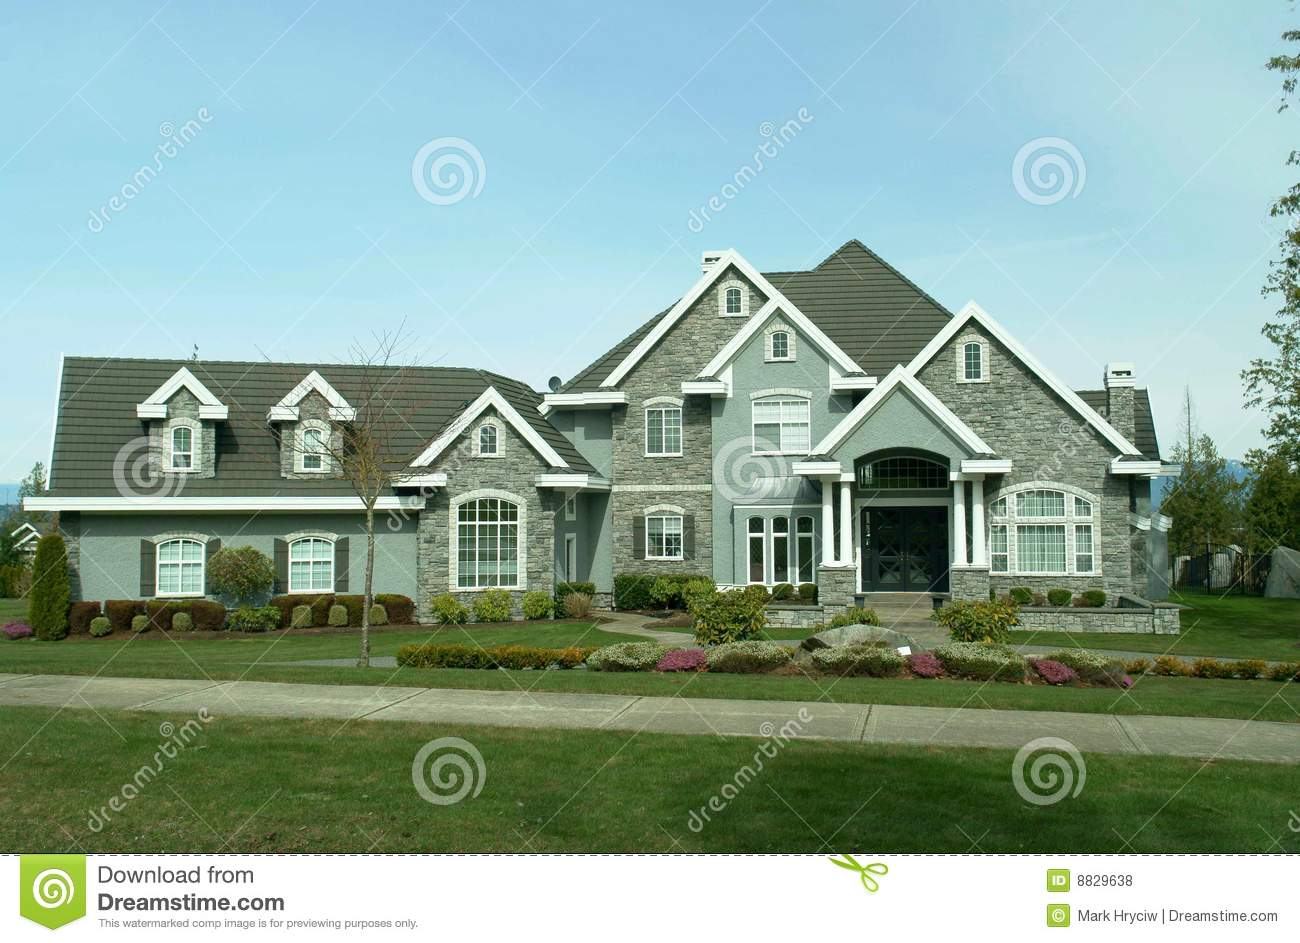 Large Suburban House Royalty Free Stock Photos Image